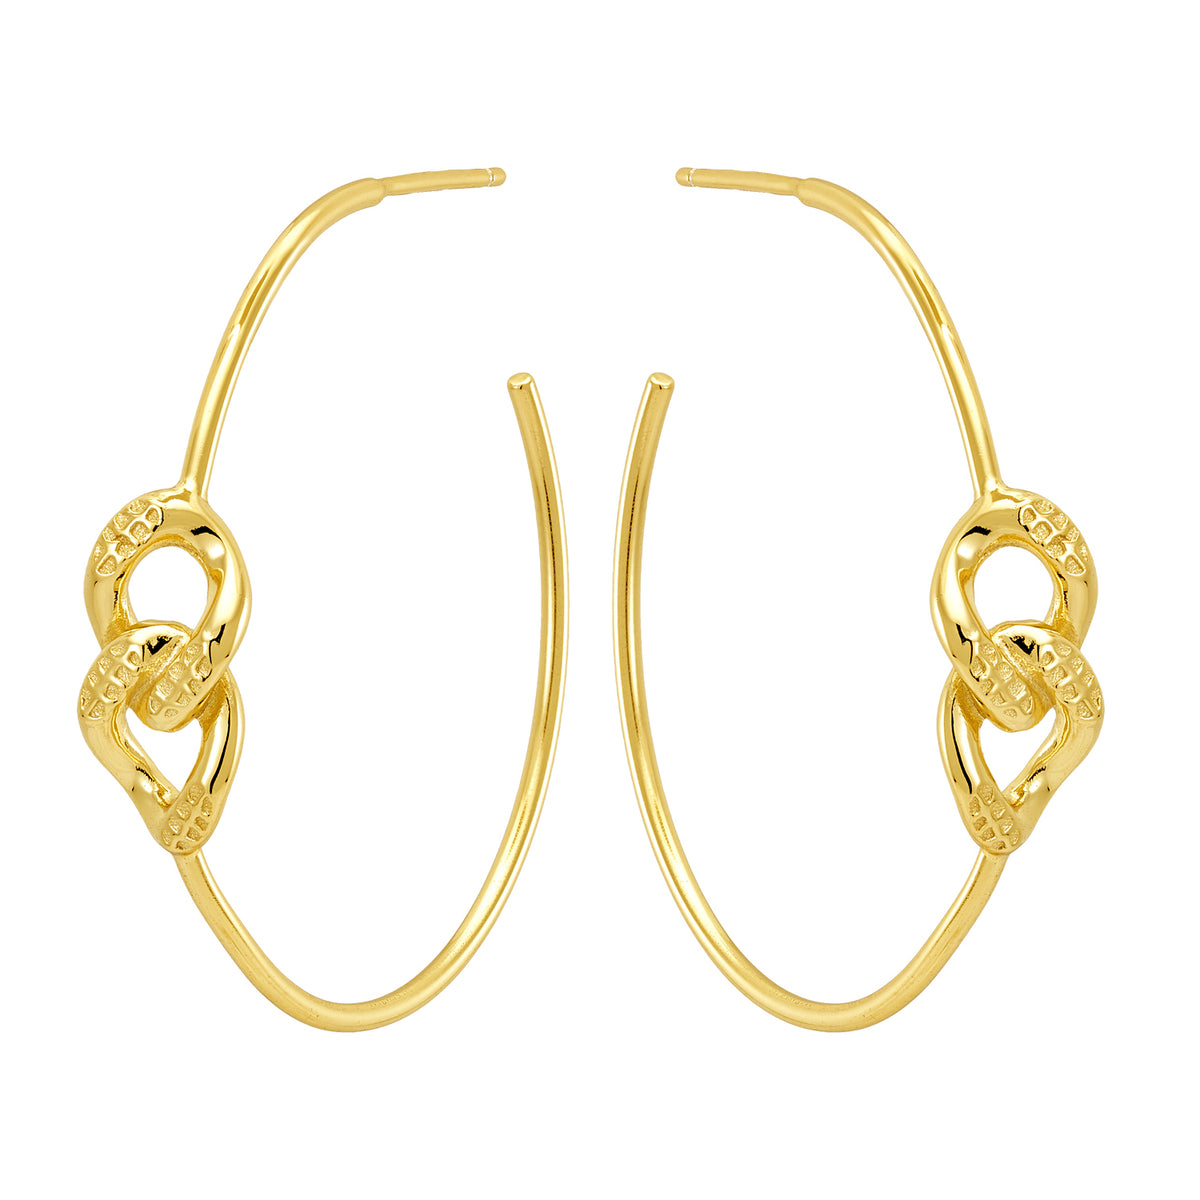 Bellona | Bond Hoops | 925 Silver | 14K Gold Plated